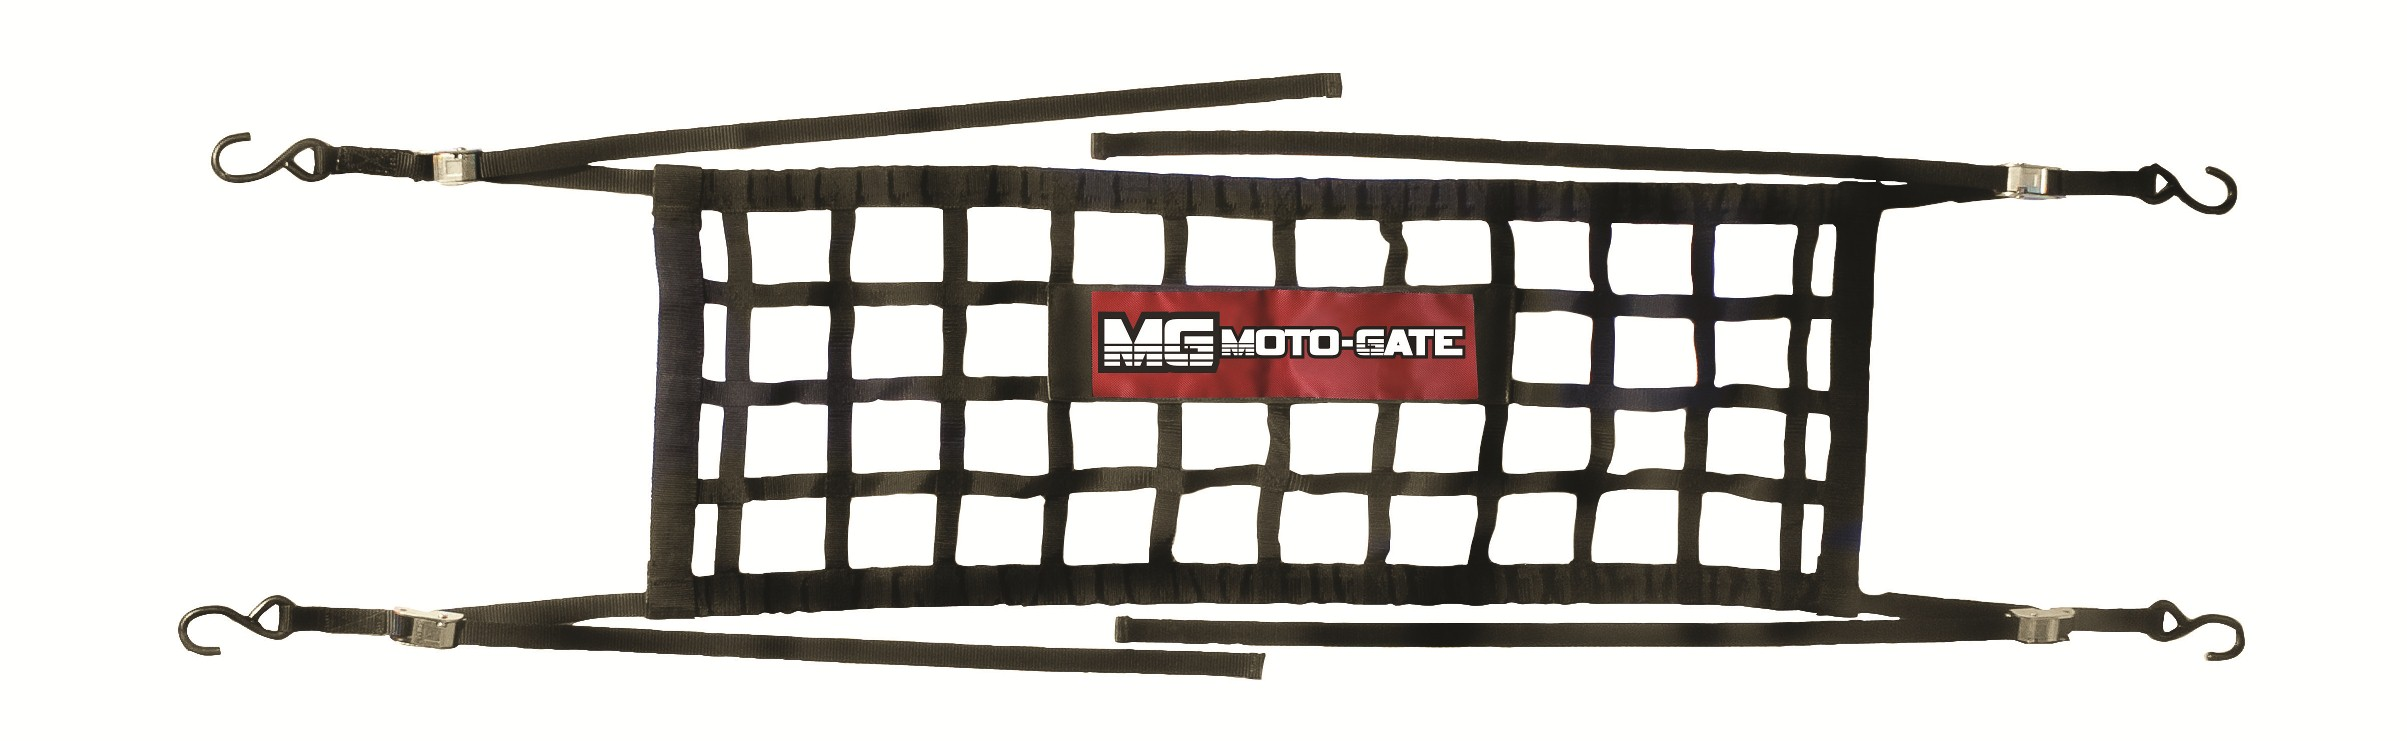 Moto Gate Flexible Tailgate Bed Extender Cargo Net